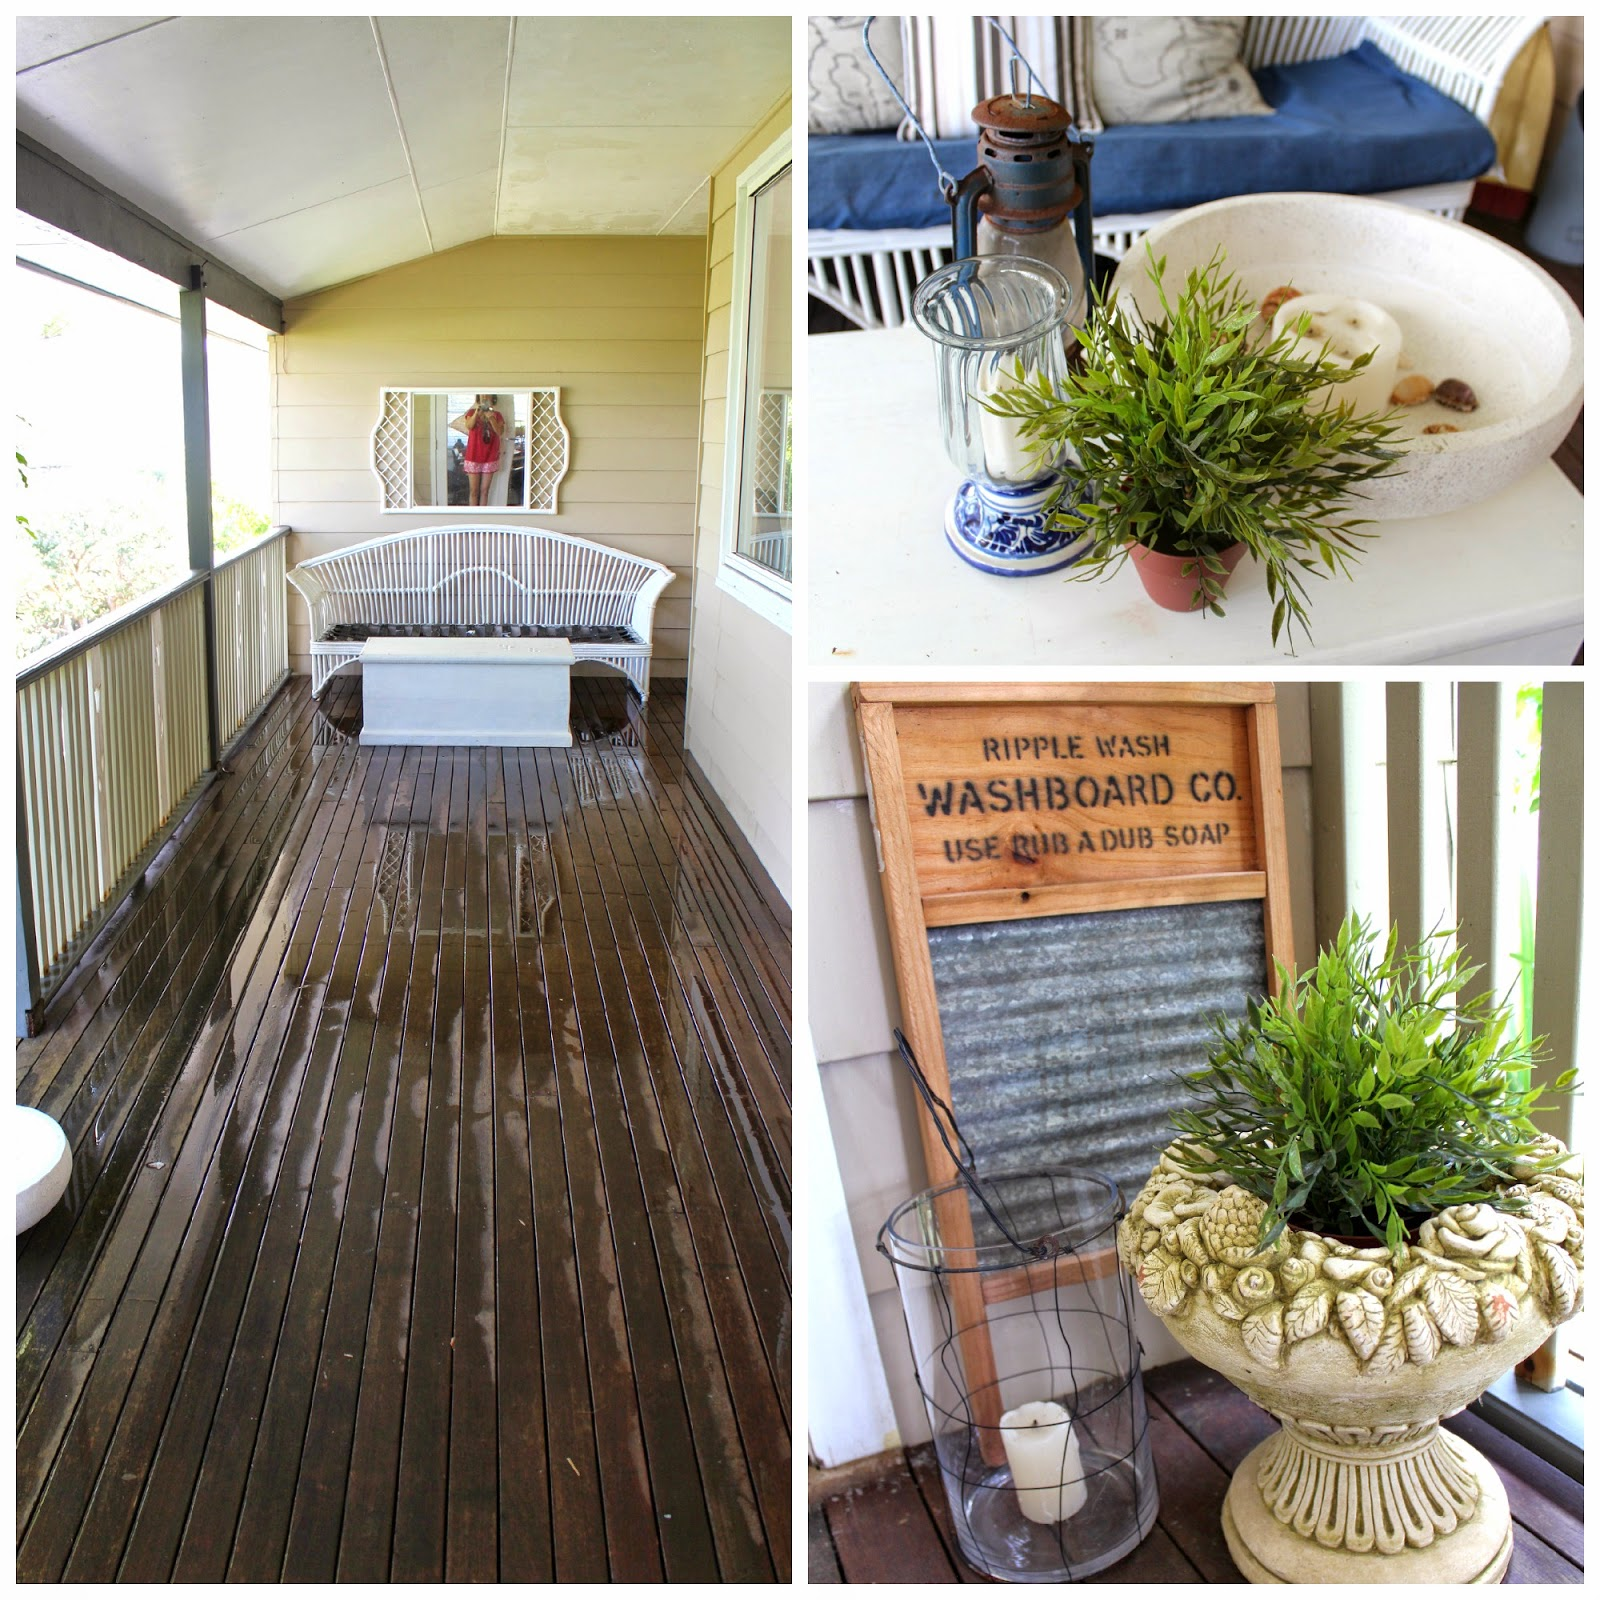 Coastal styling and craft ideas desire empire - How To Style A Rustic Outdoor Space